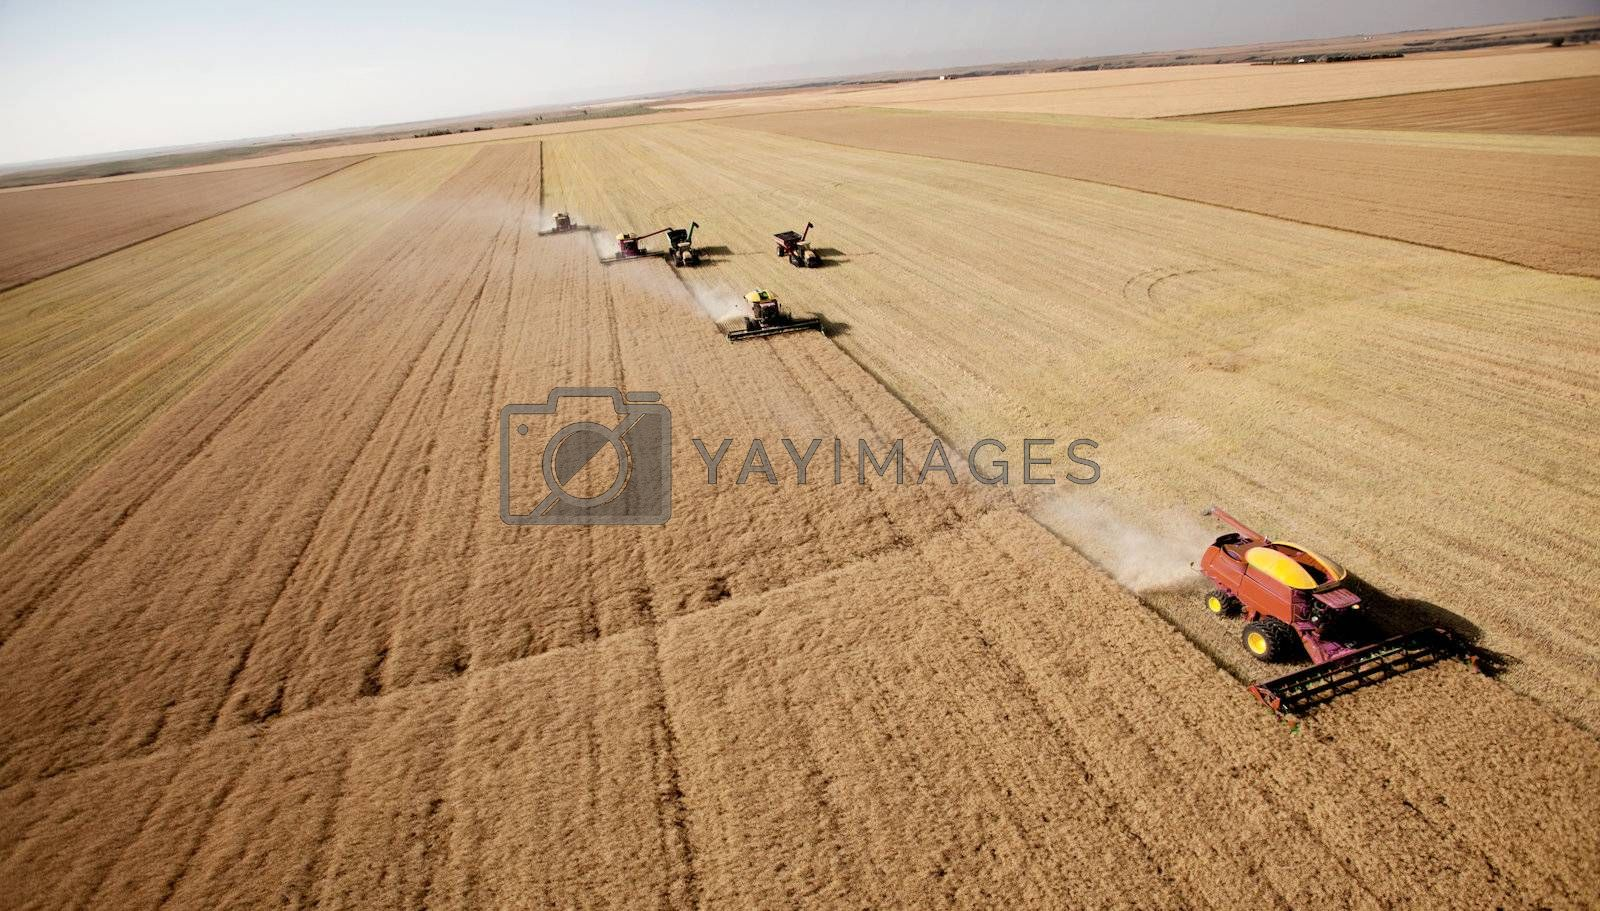 Combines on prairie landscape driving in formation